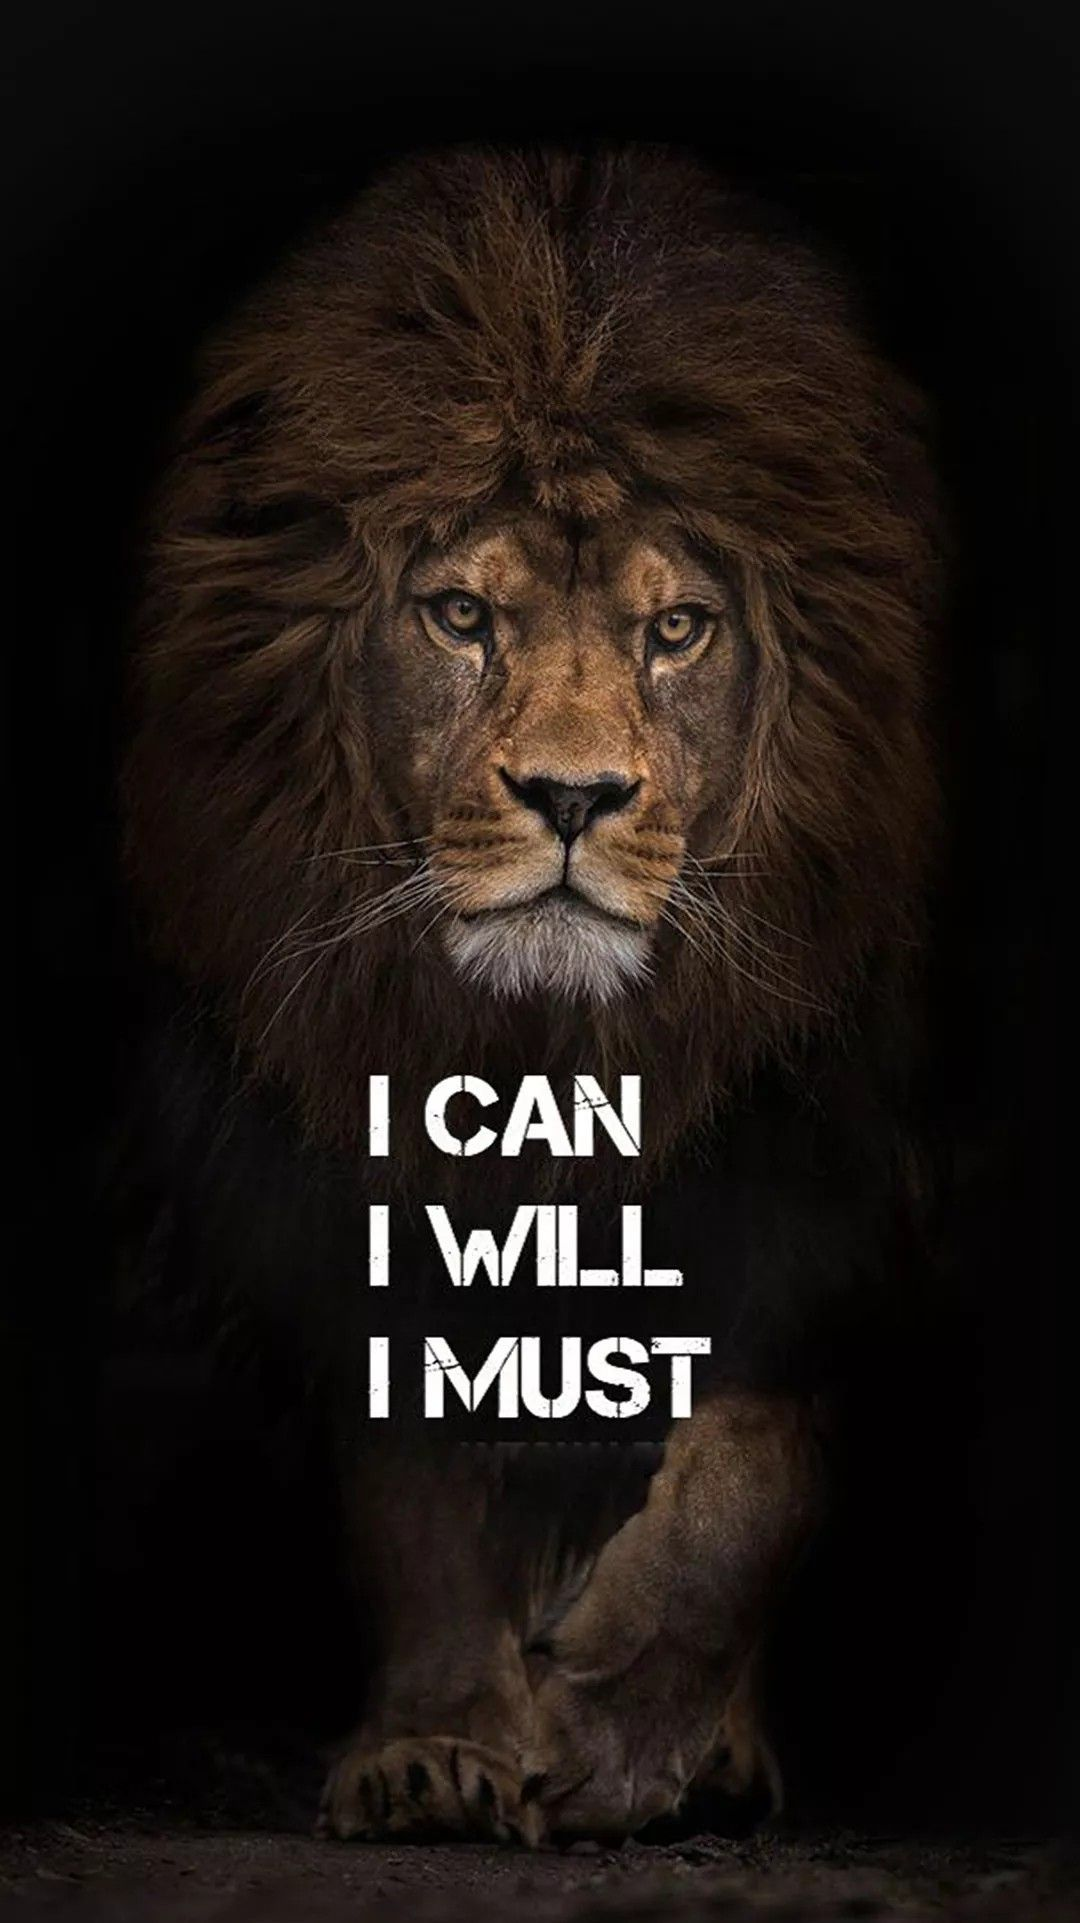 5k Ultra HD Lion wallpapers, Quote wallpapers , Black wallpapers